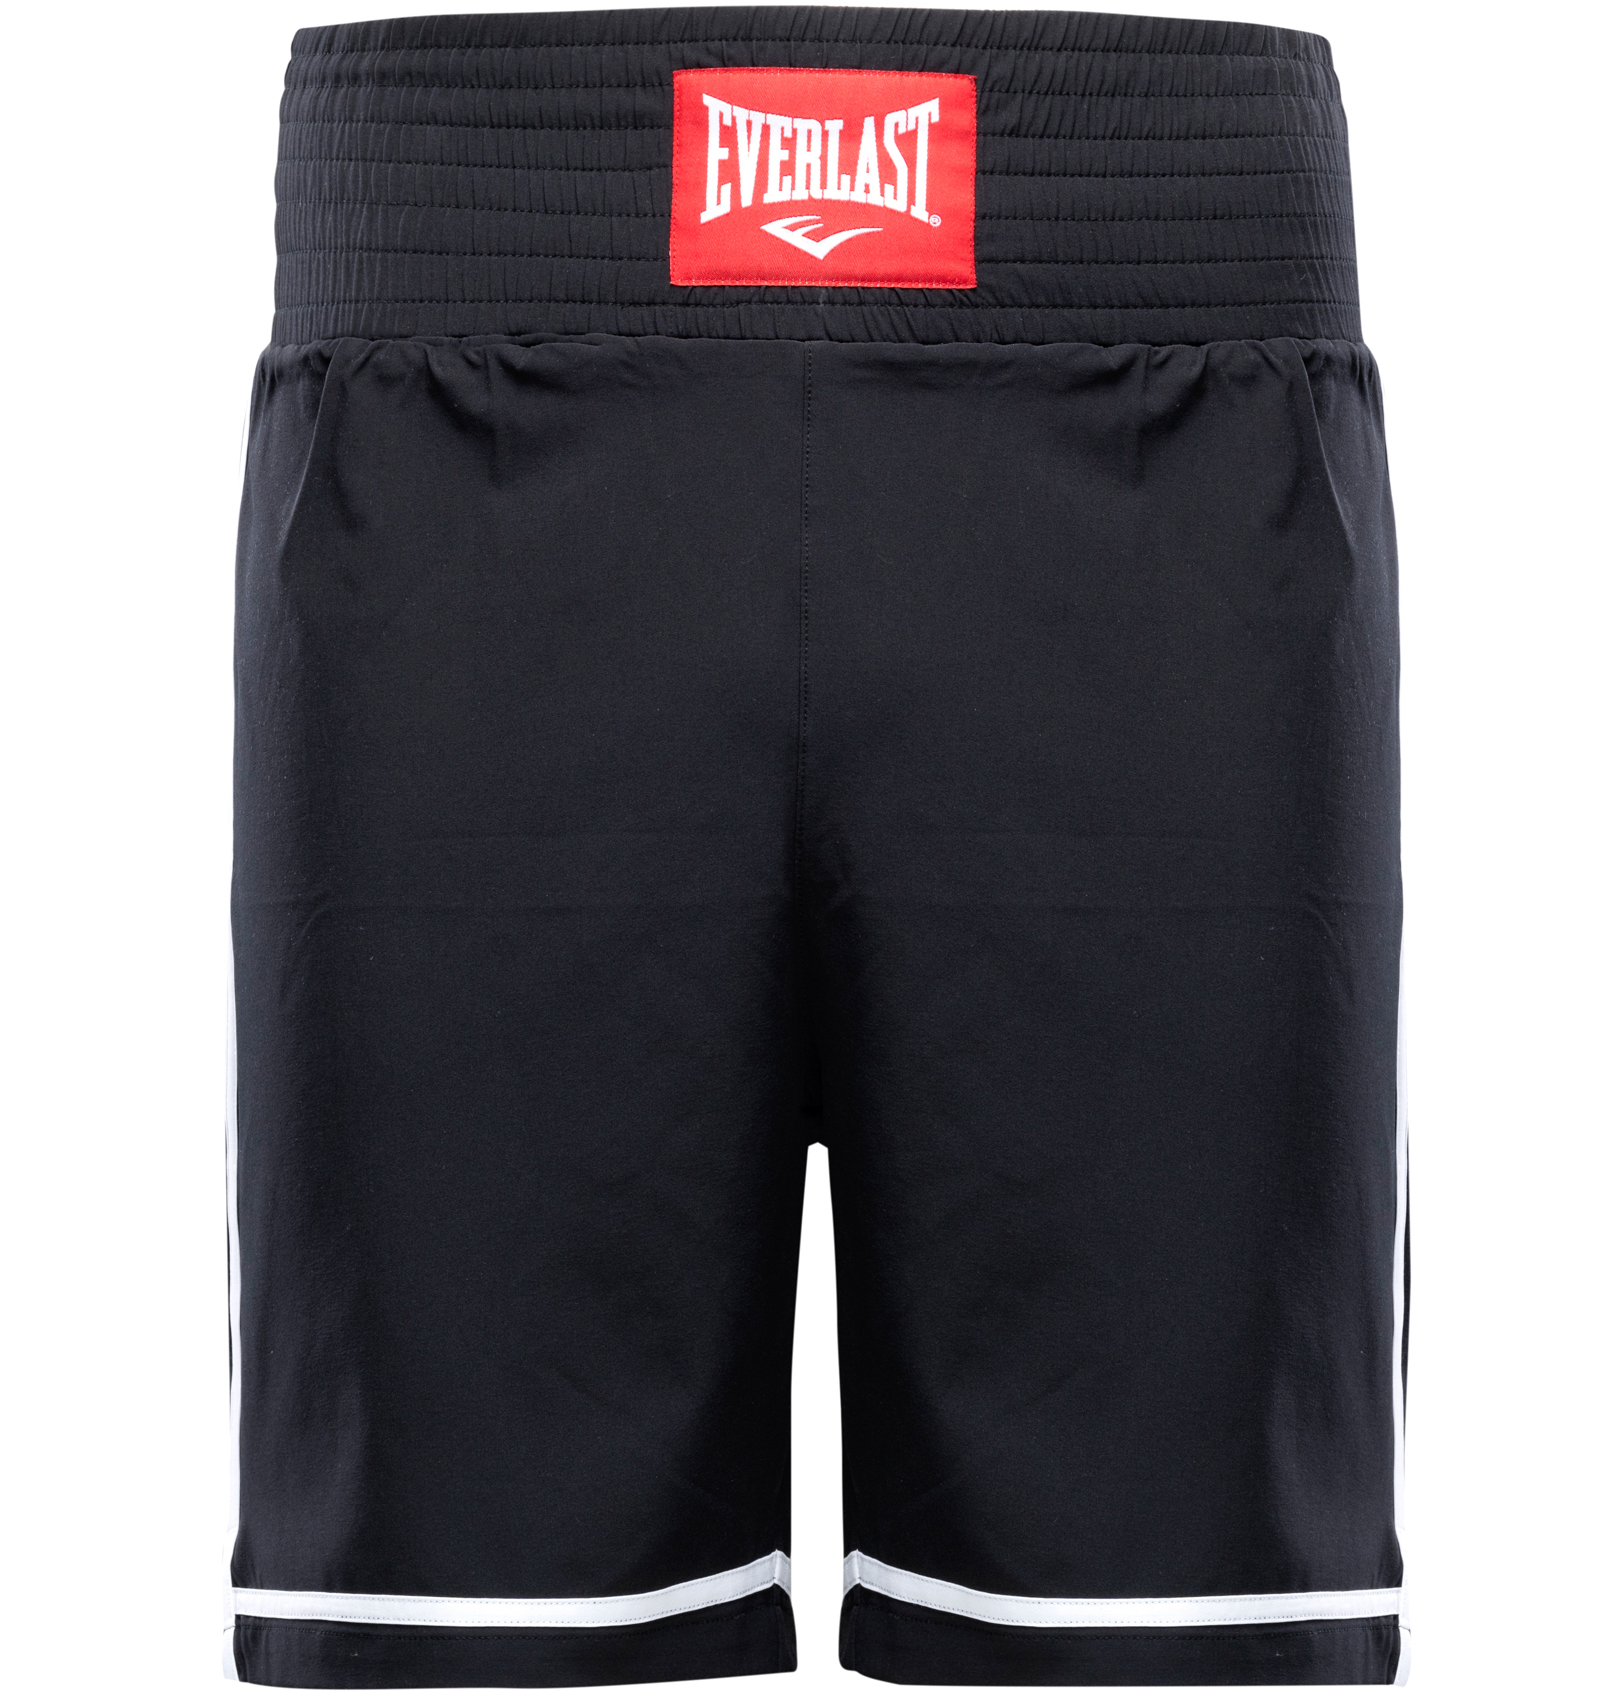 Short de boxe Everlast cross Noir et Blanc